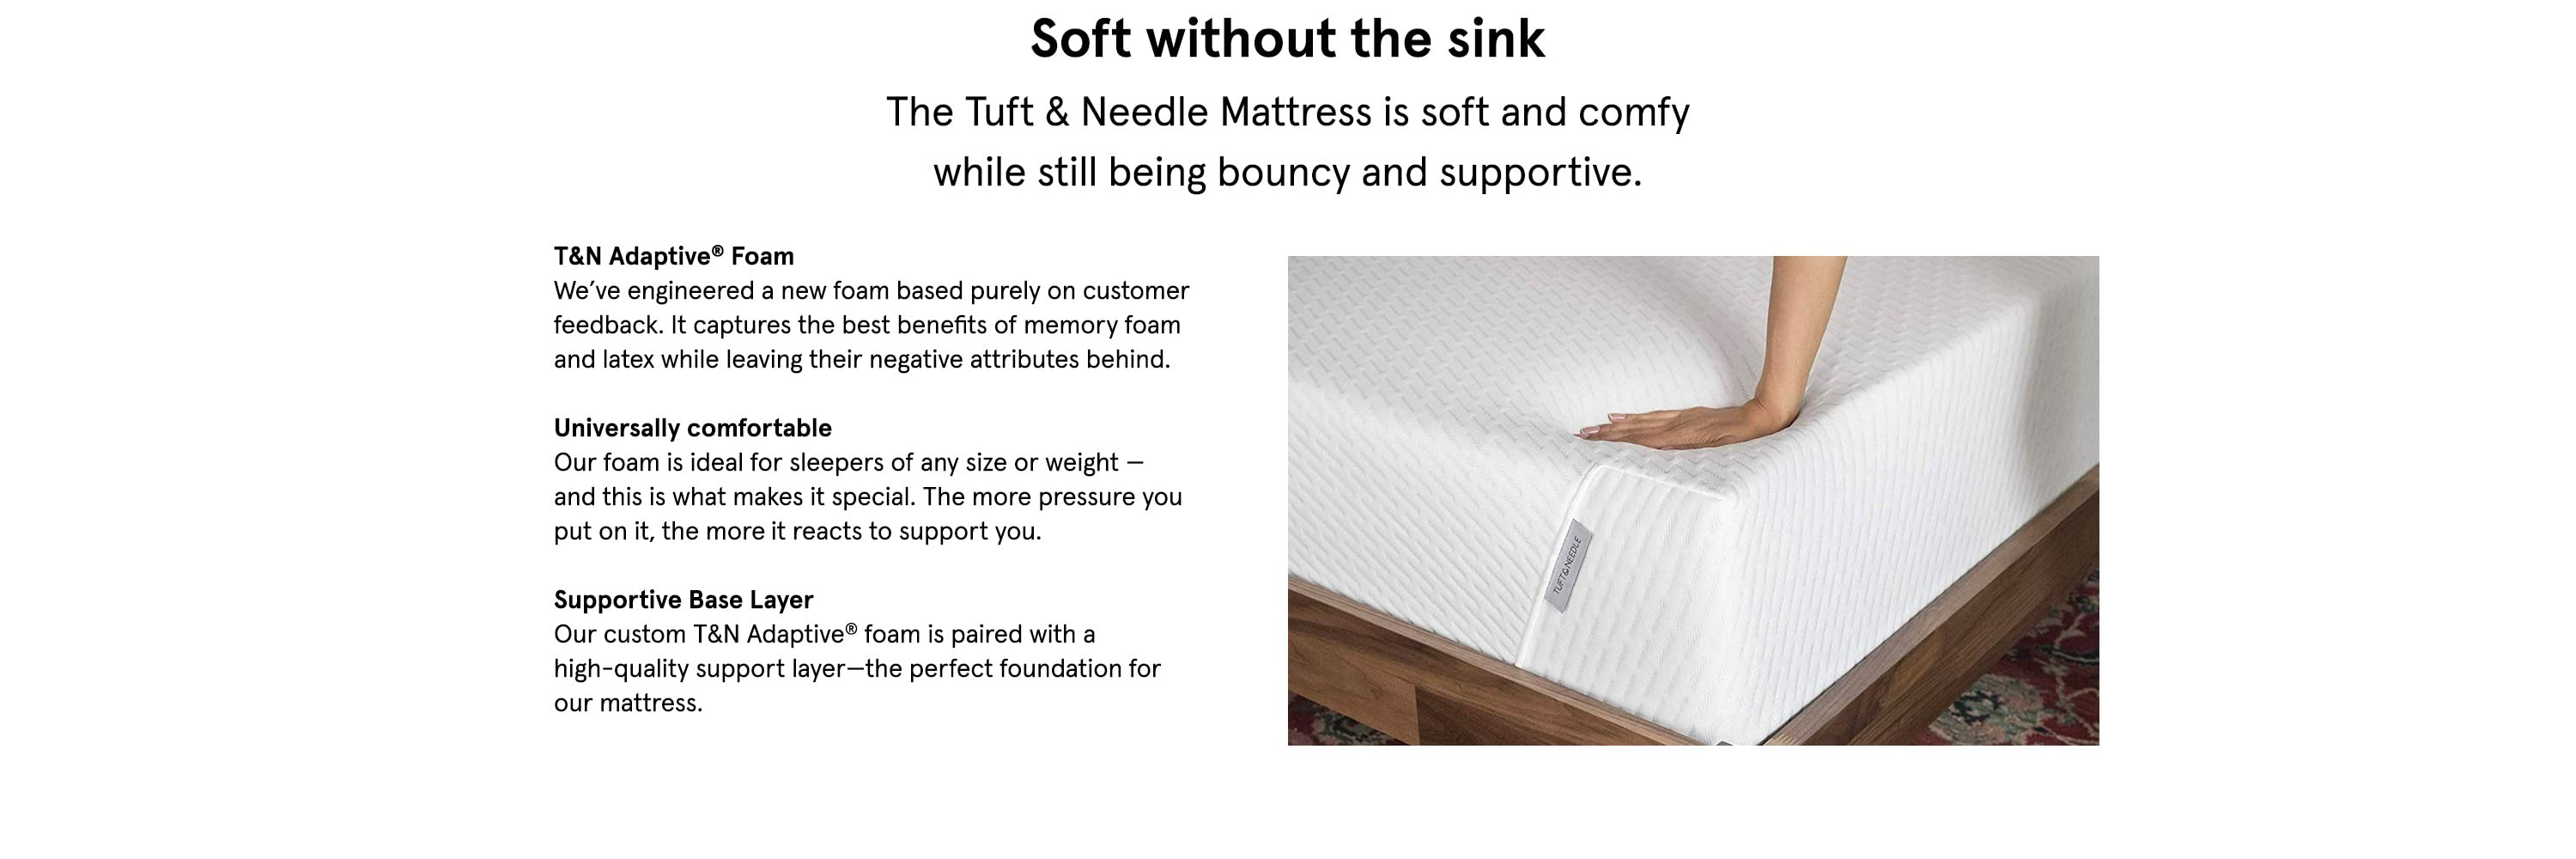 Soft without the sink